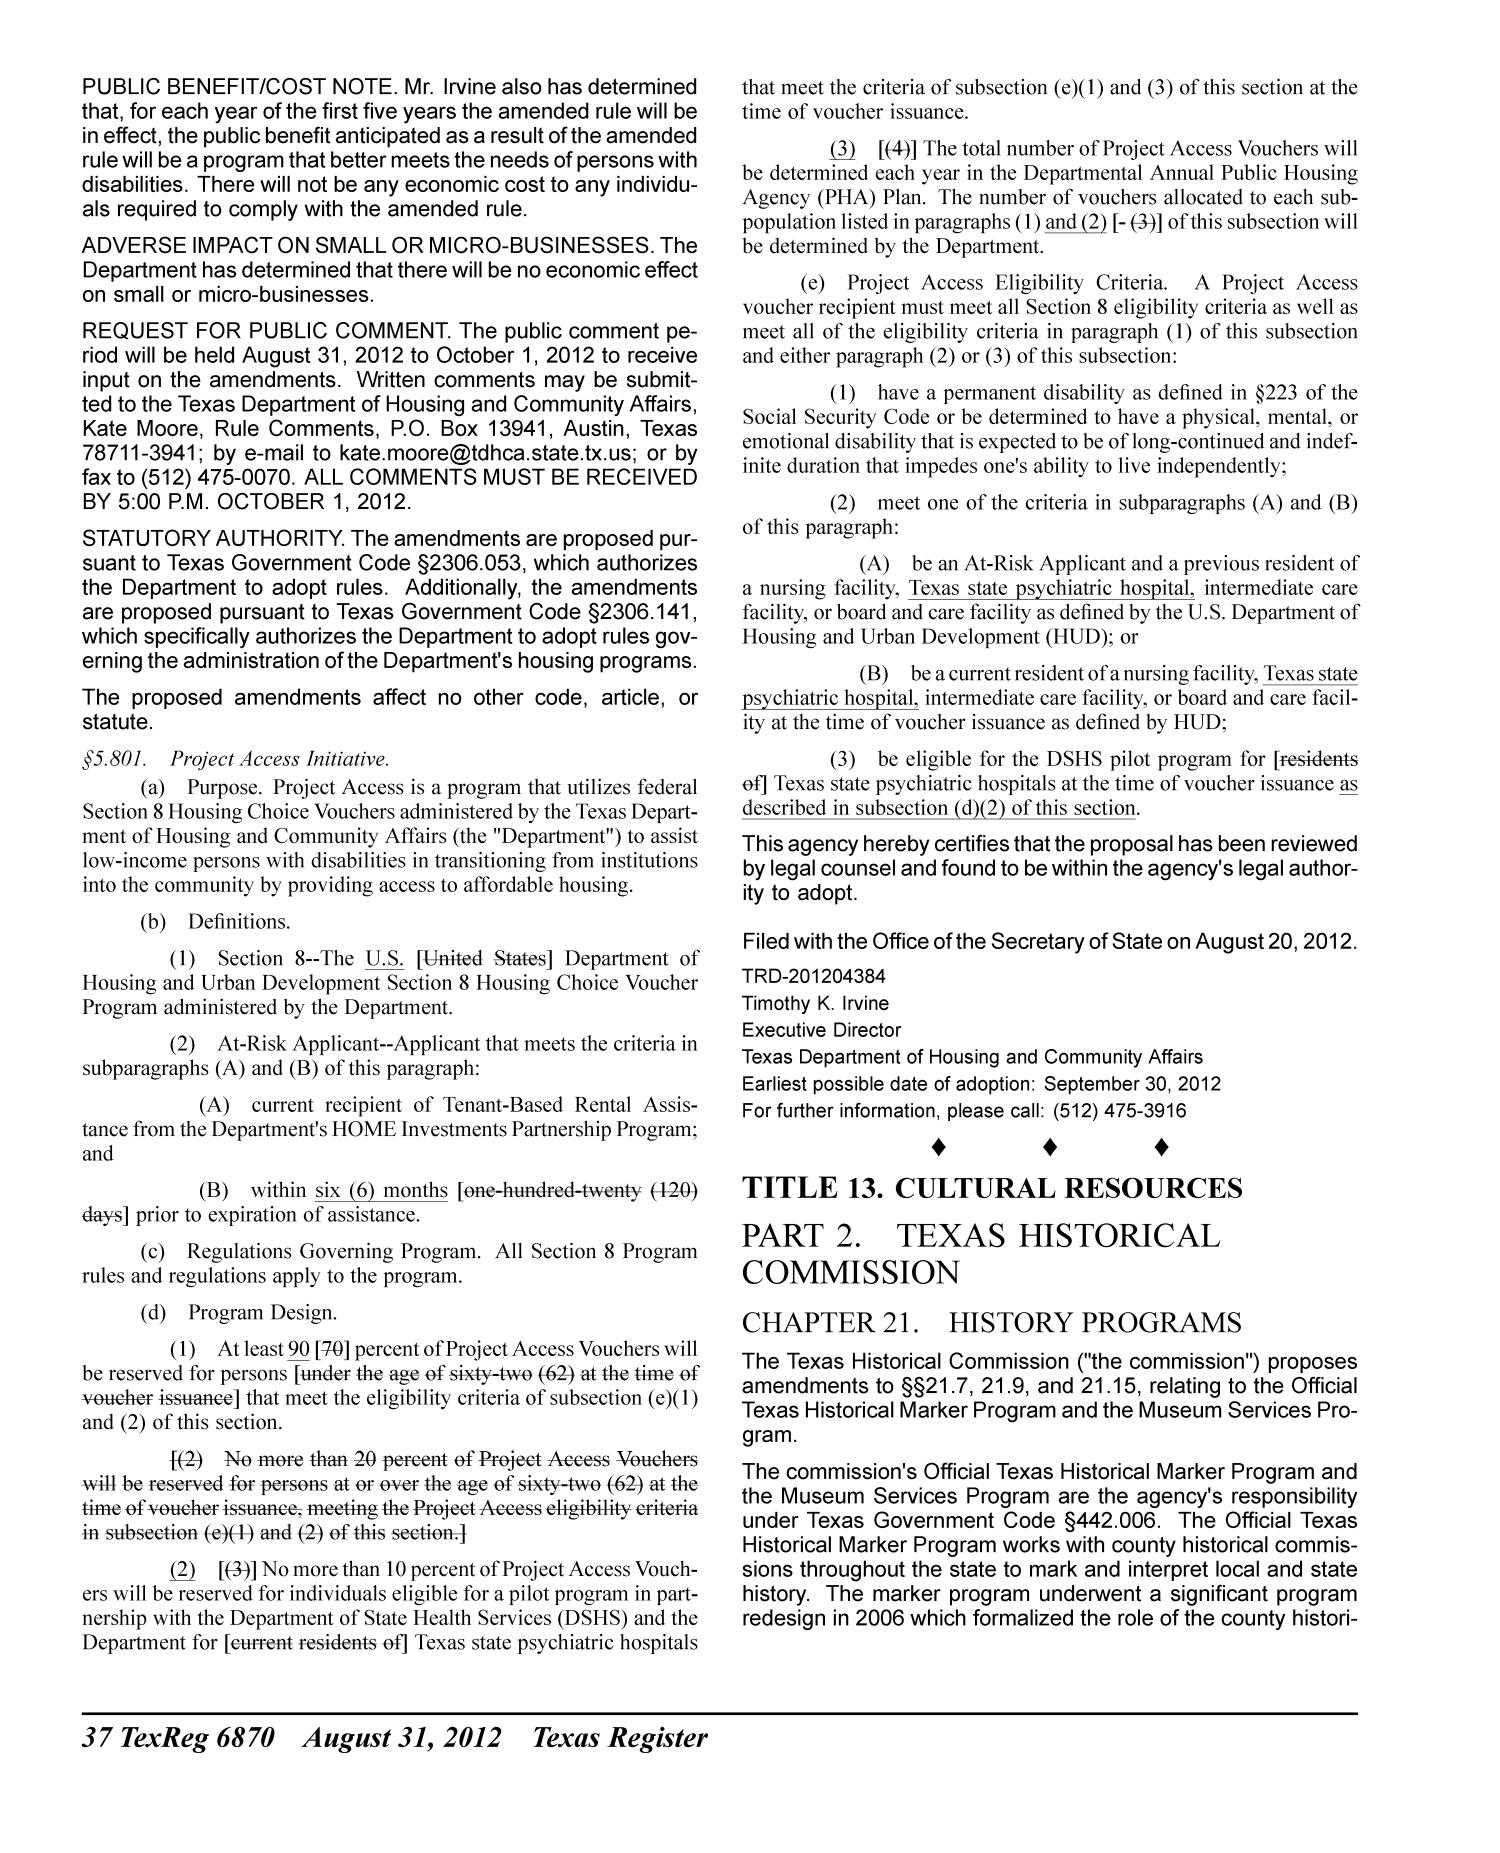 Texas Register, Volume 37, Number 35, Pages 6819-7008, August 31, 2012                                                                                                      6870